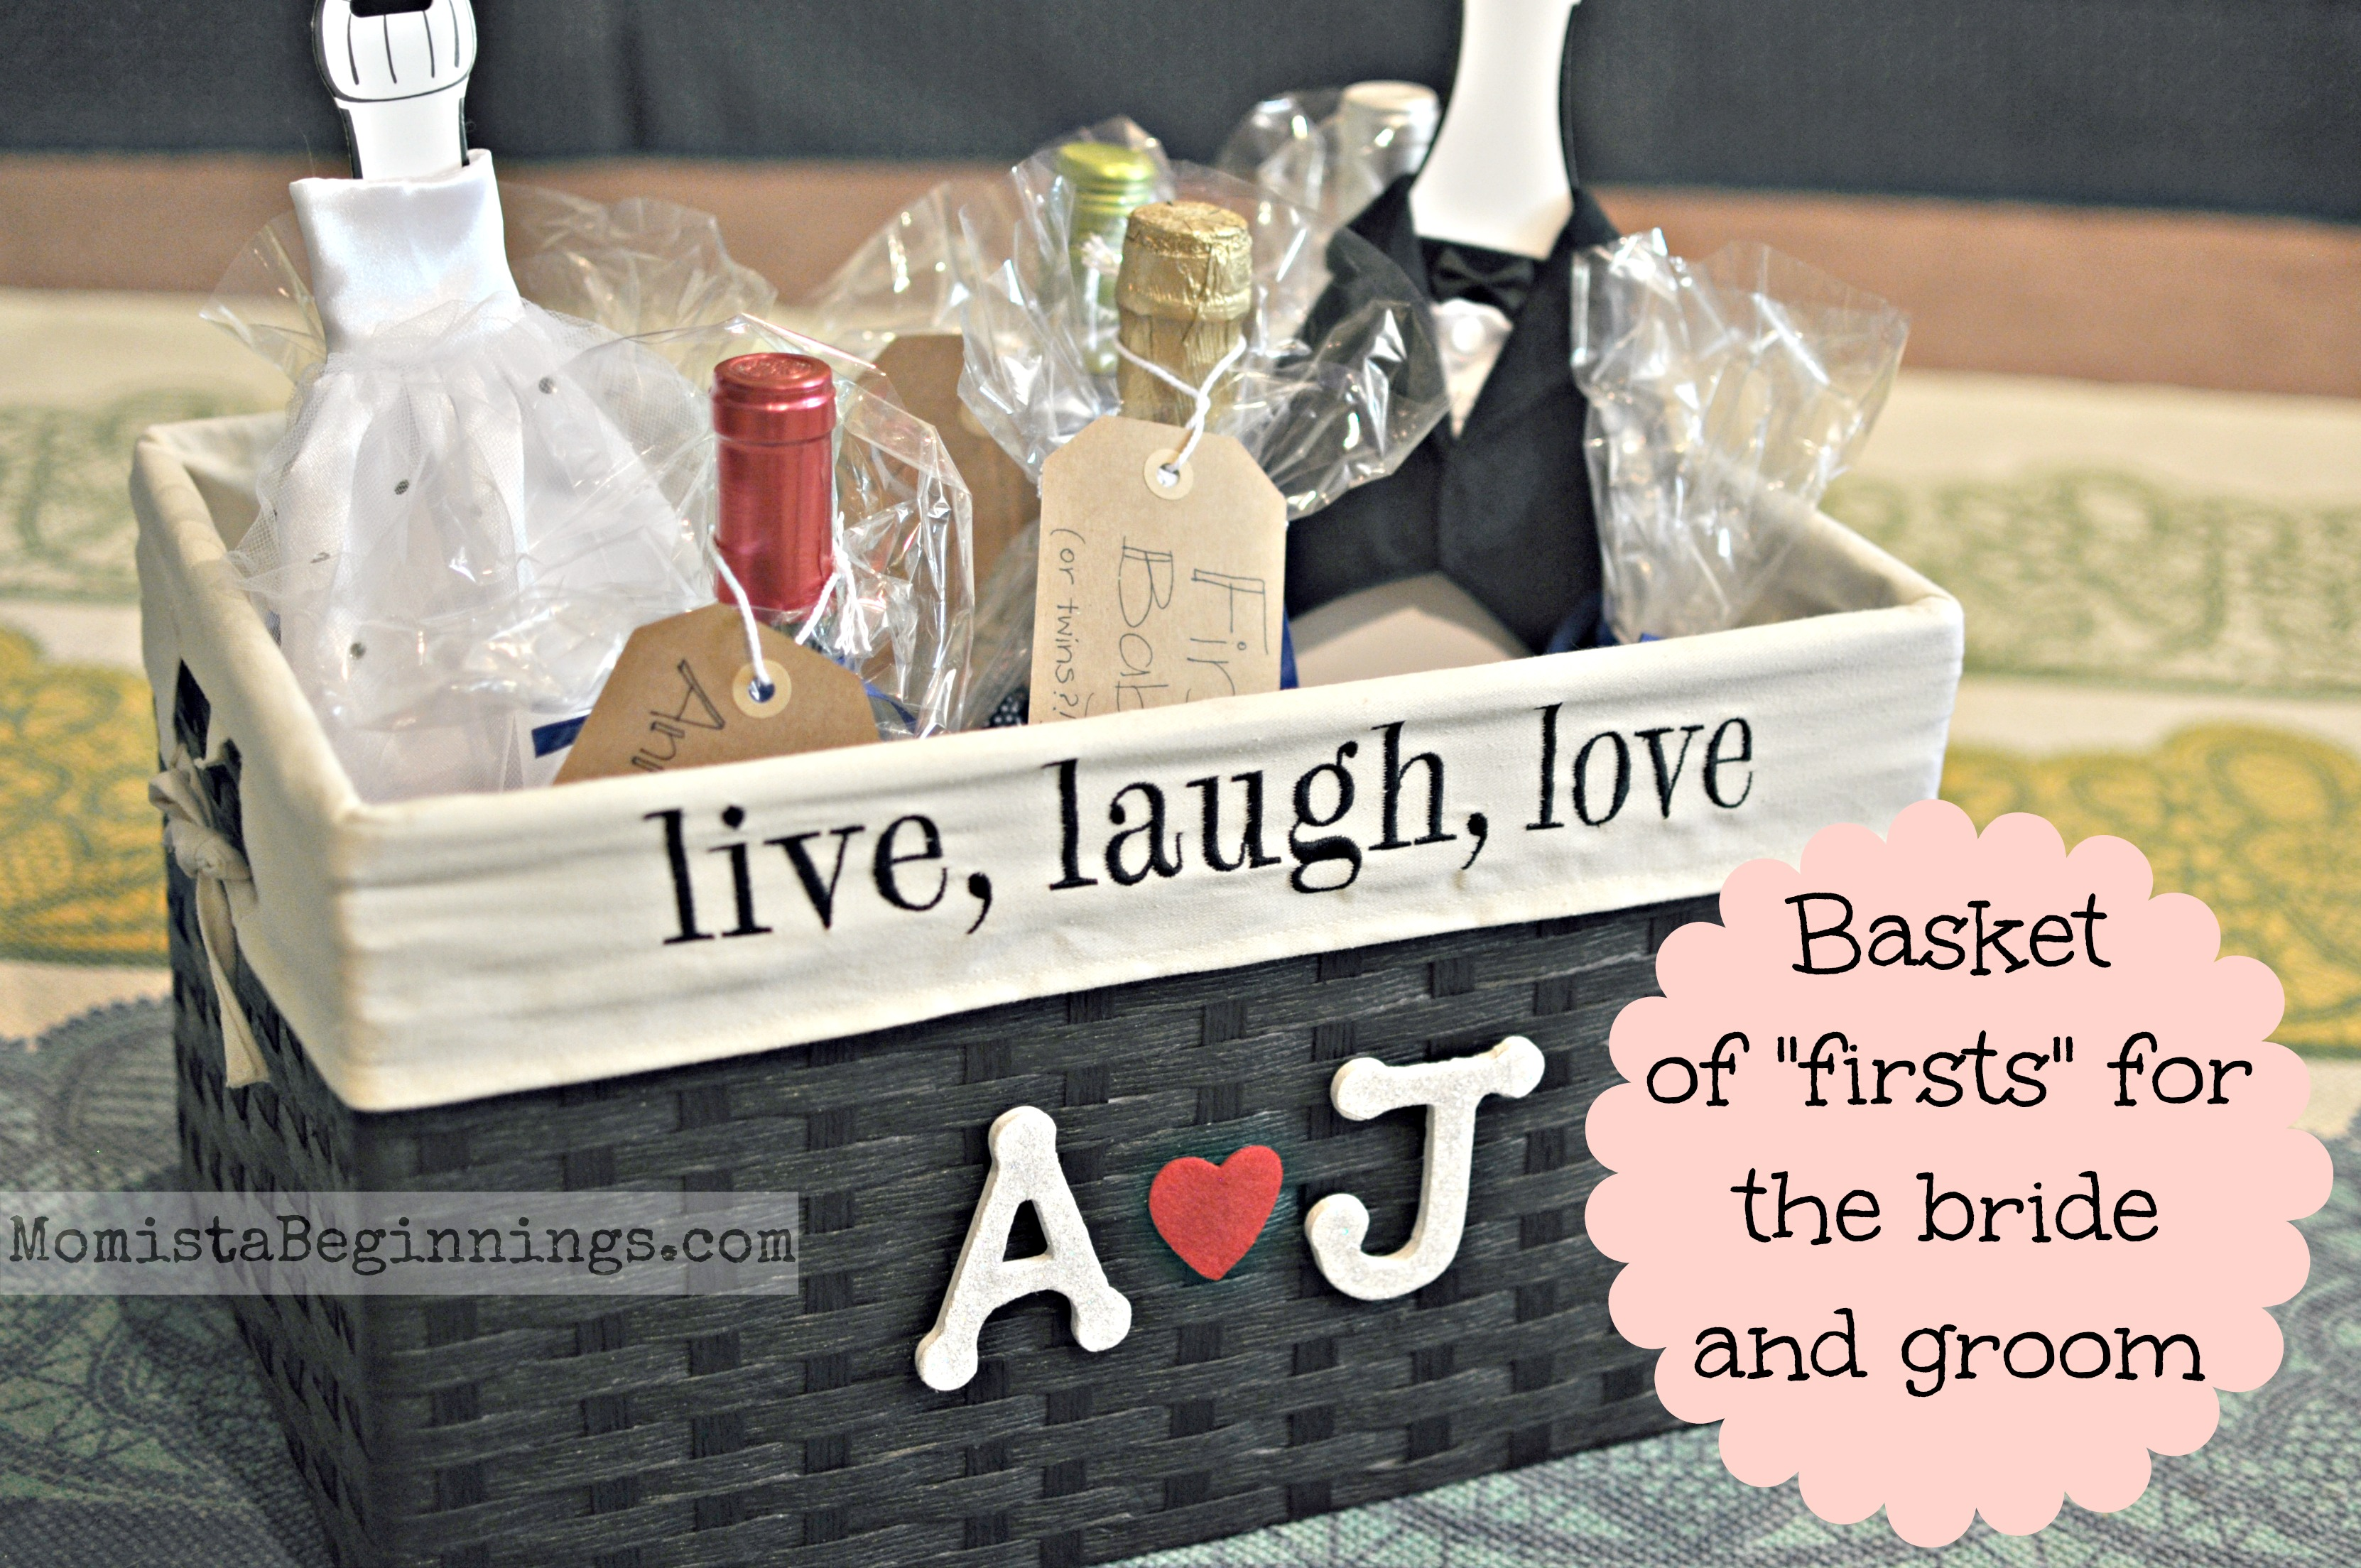 Wedding Gift Ideas For Parents Of Bride And Groom : Basket of